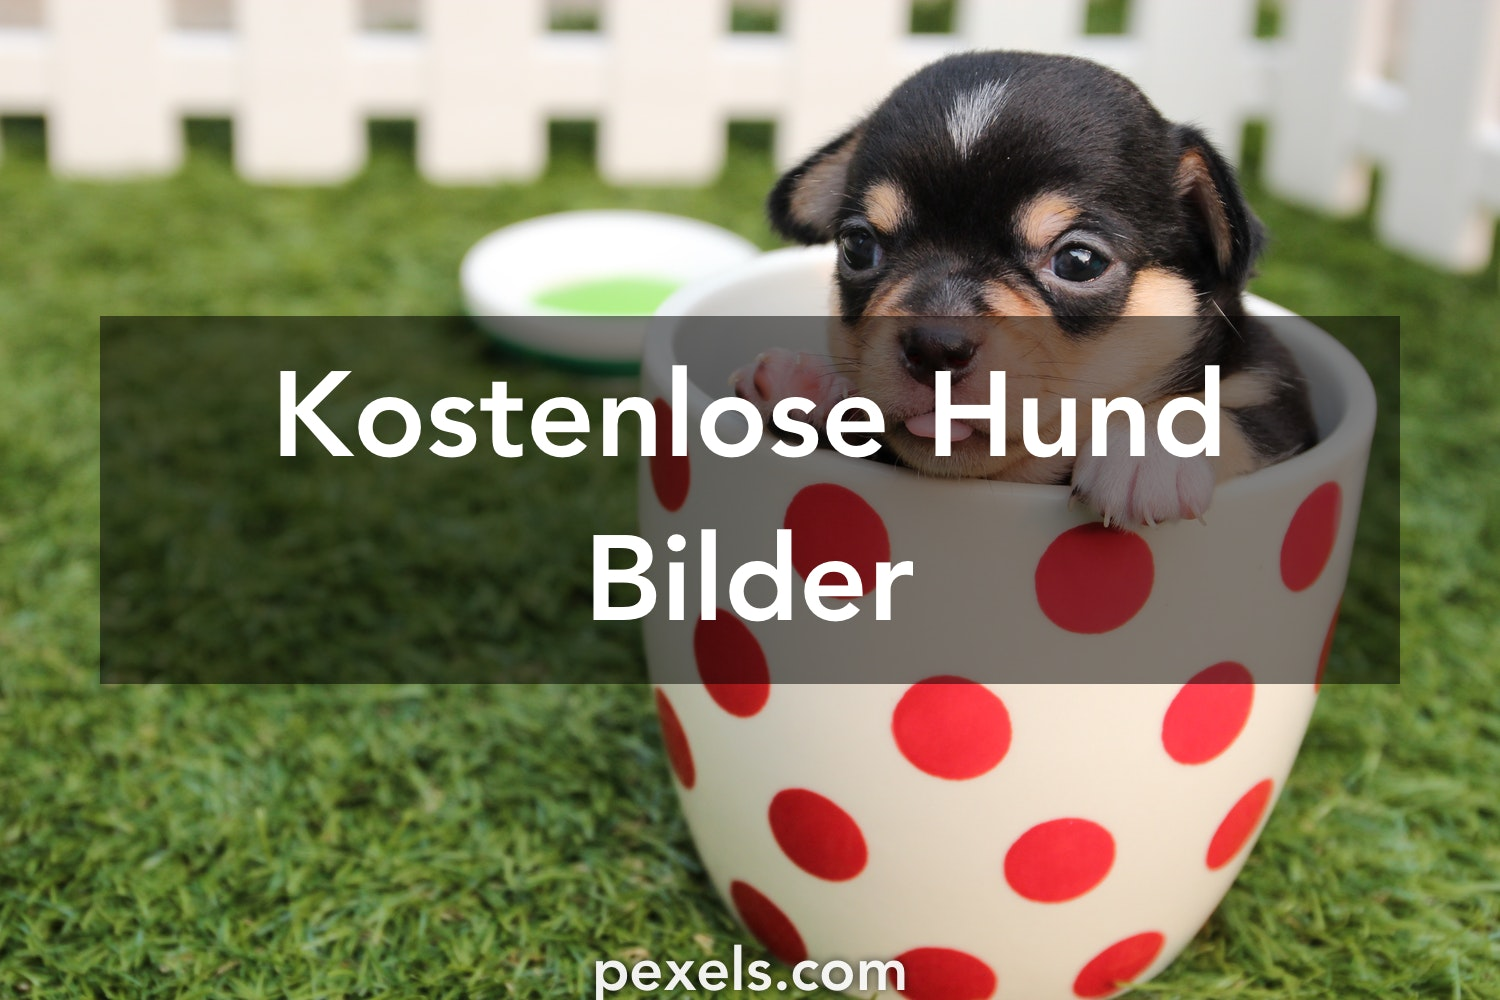 kostenlose stock fotos - photo #34